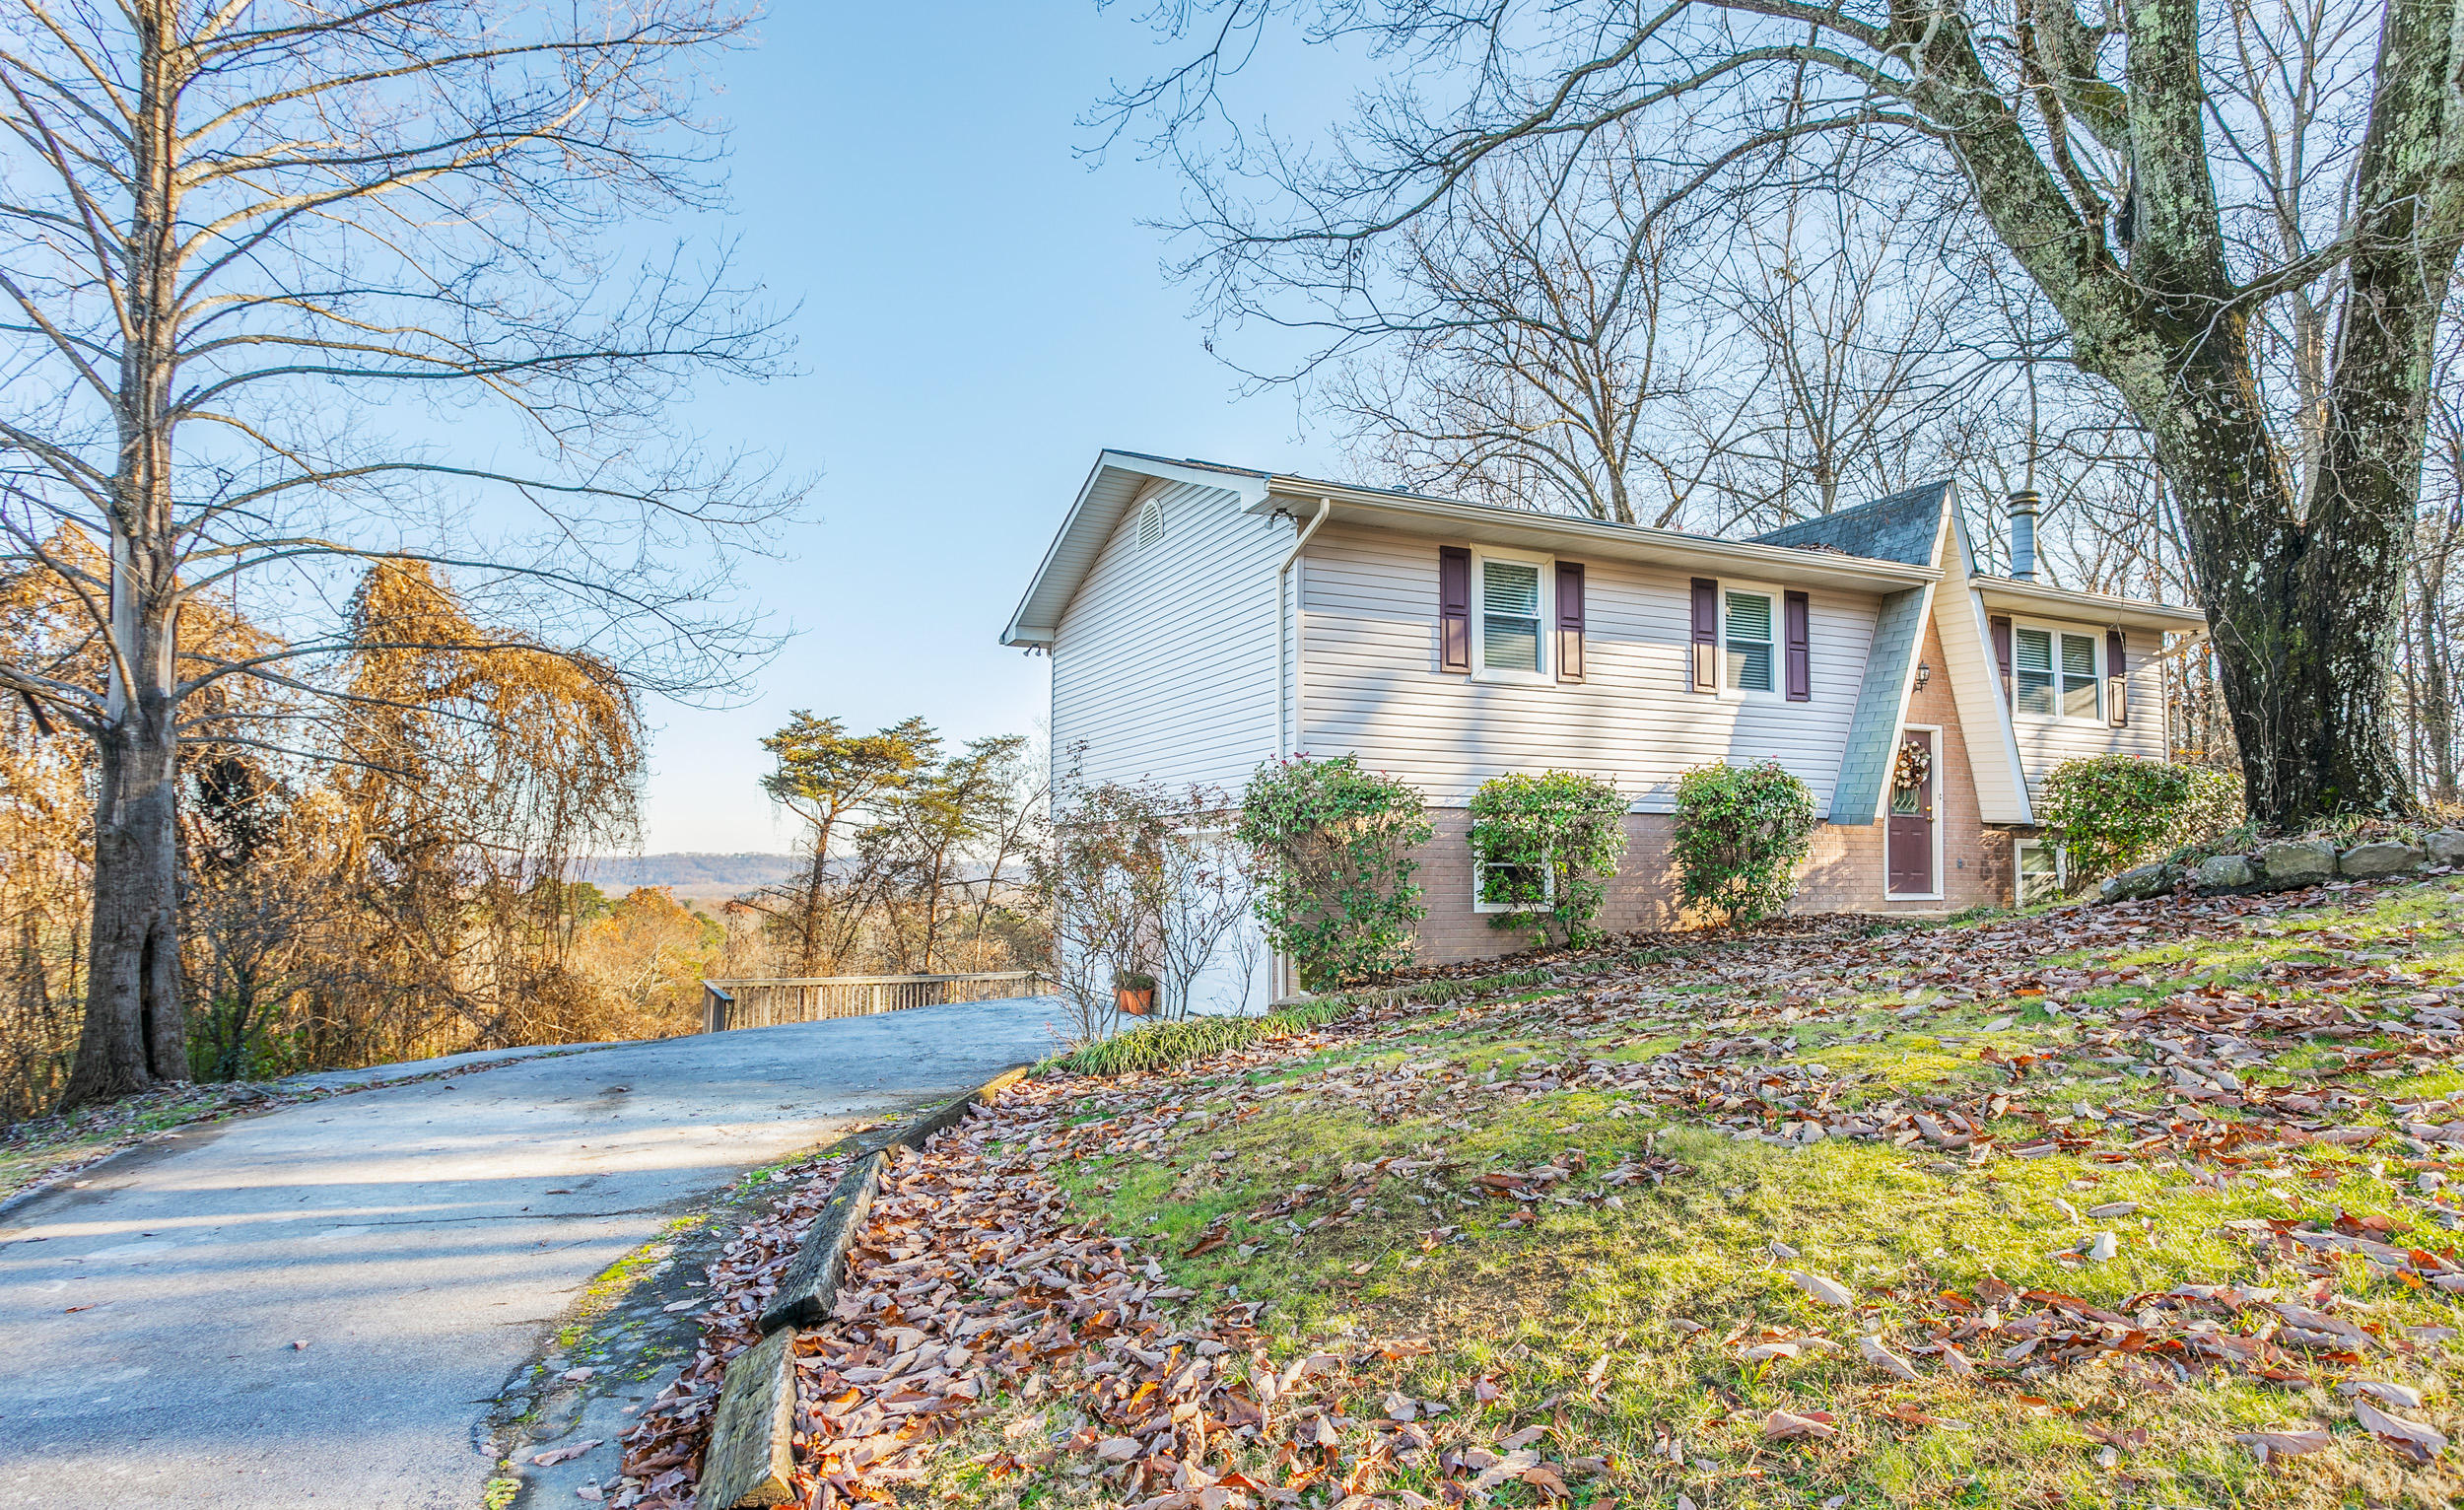 533 Ethyelyn Ln, Hixson, TN 37343